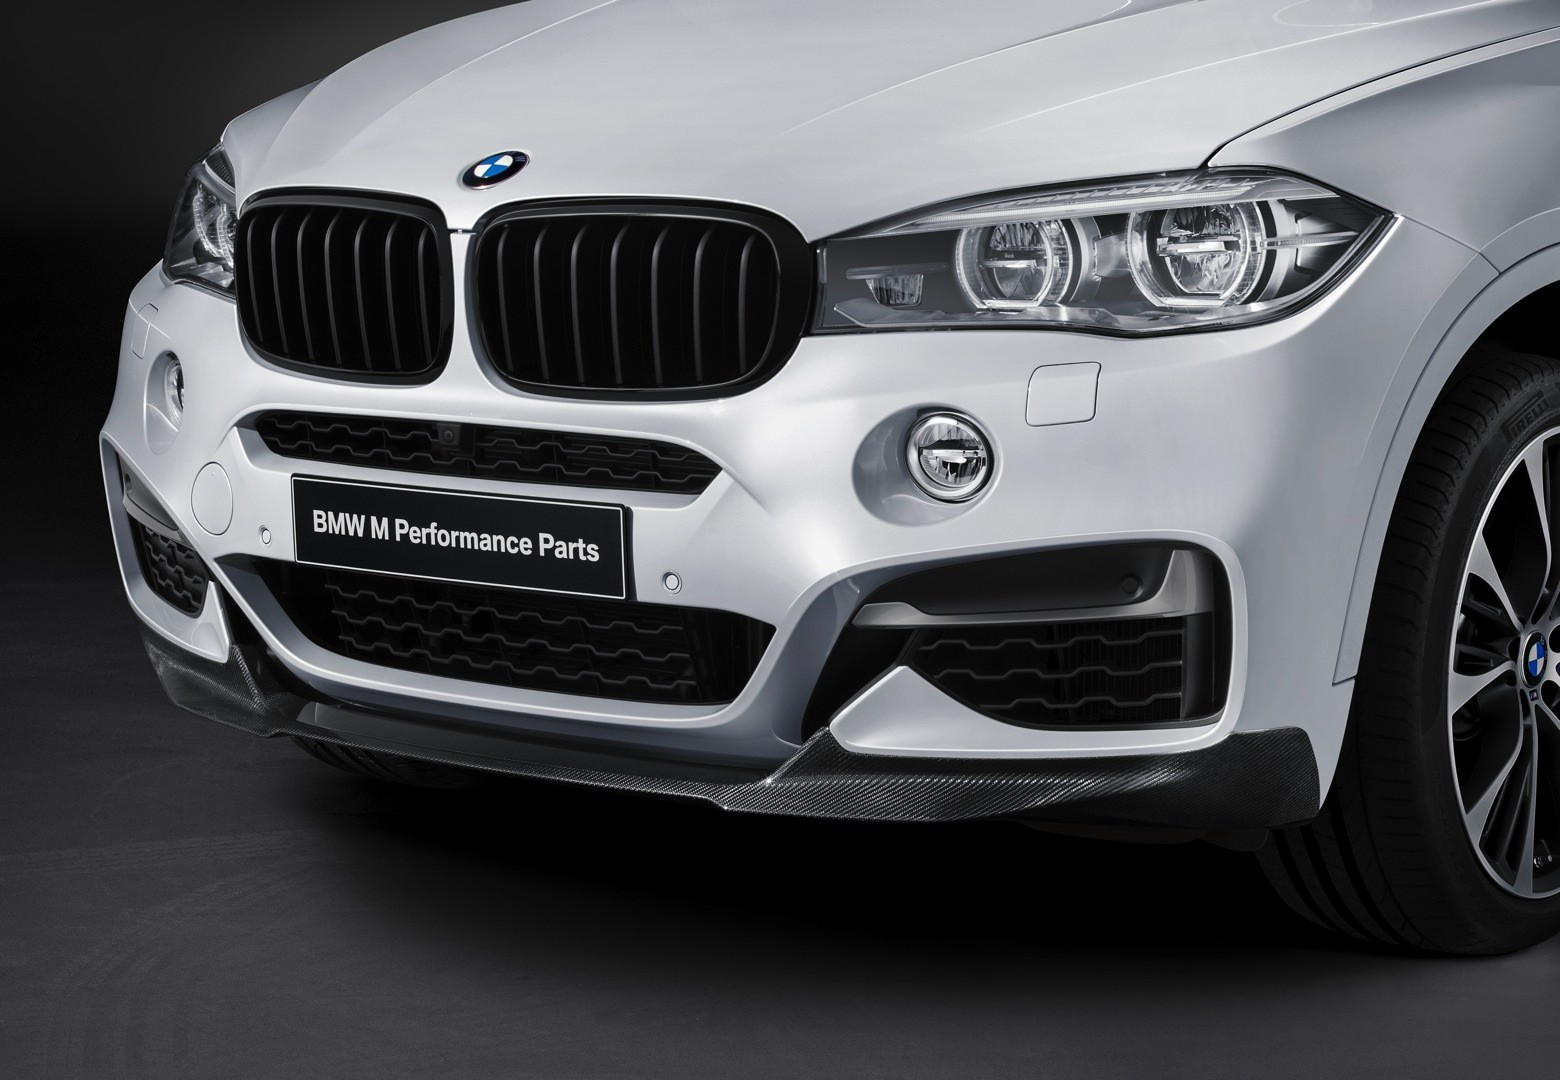 Bmw Launches New M Performance Parts And Power Kits For